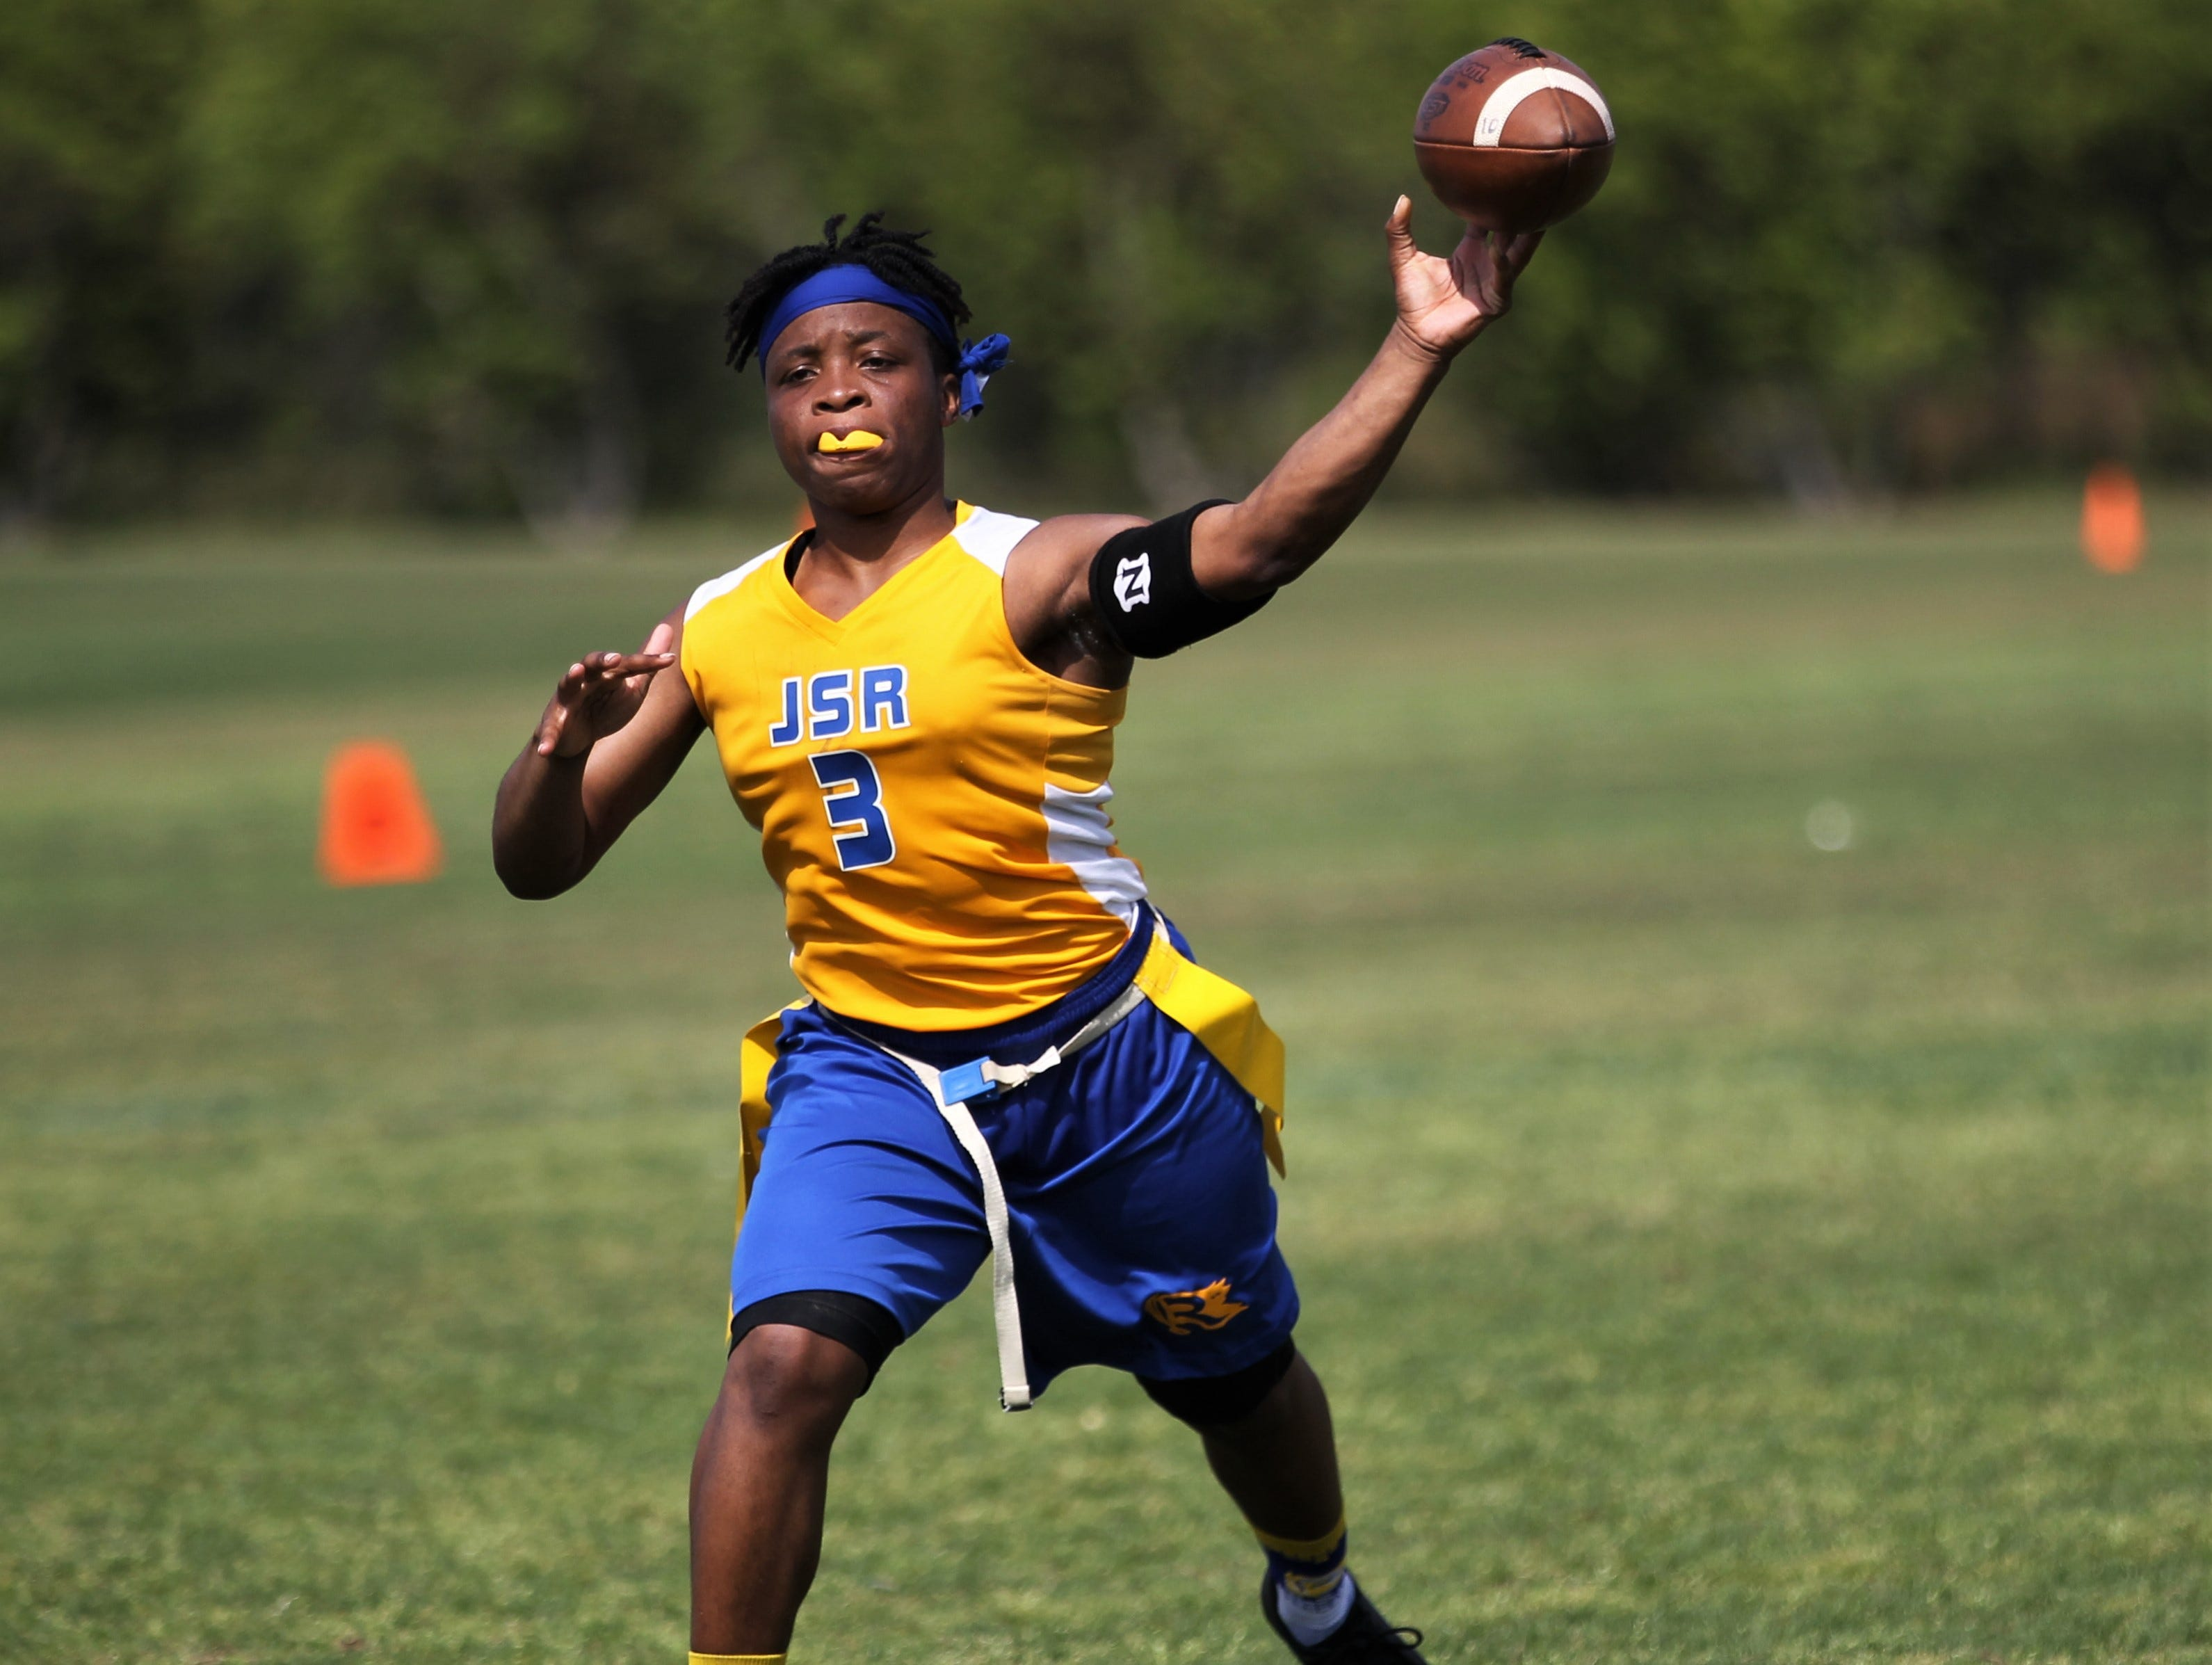 Rickards senior quarterback Iyanla Woodfaulk throws a pass during the 2019 Capital City Classic flag football tournament at the FSU Rec SportsPlex on April 6, 2019.